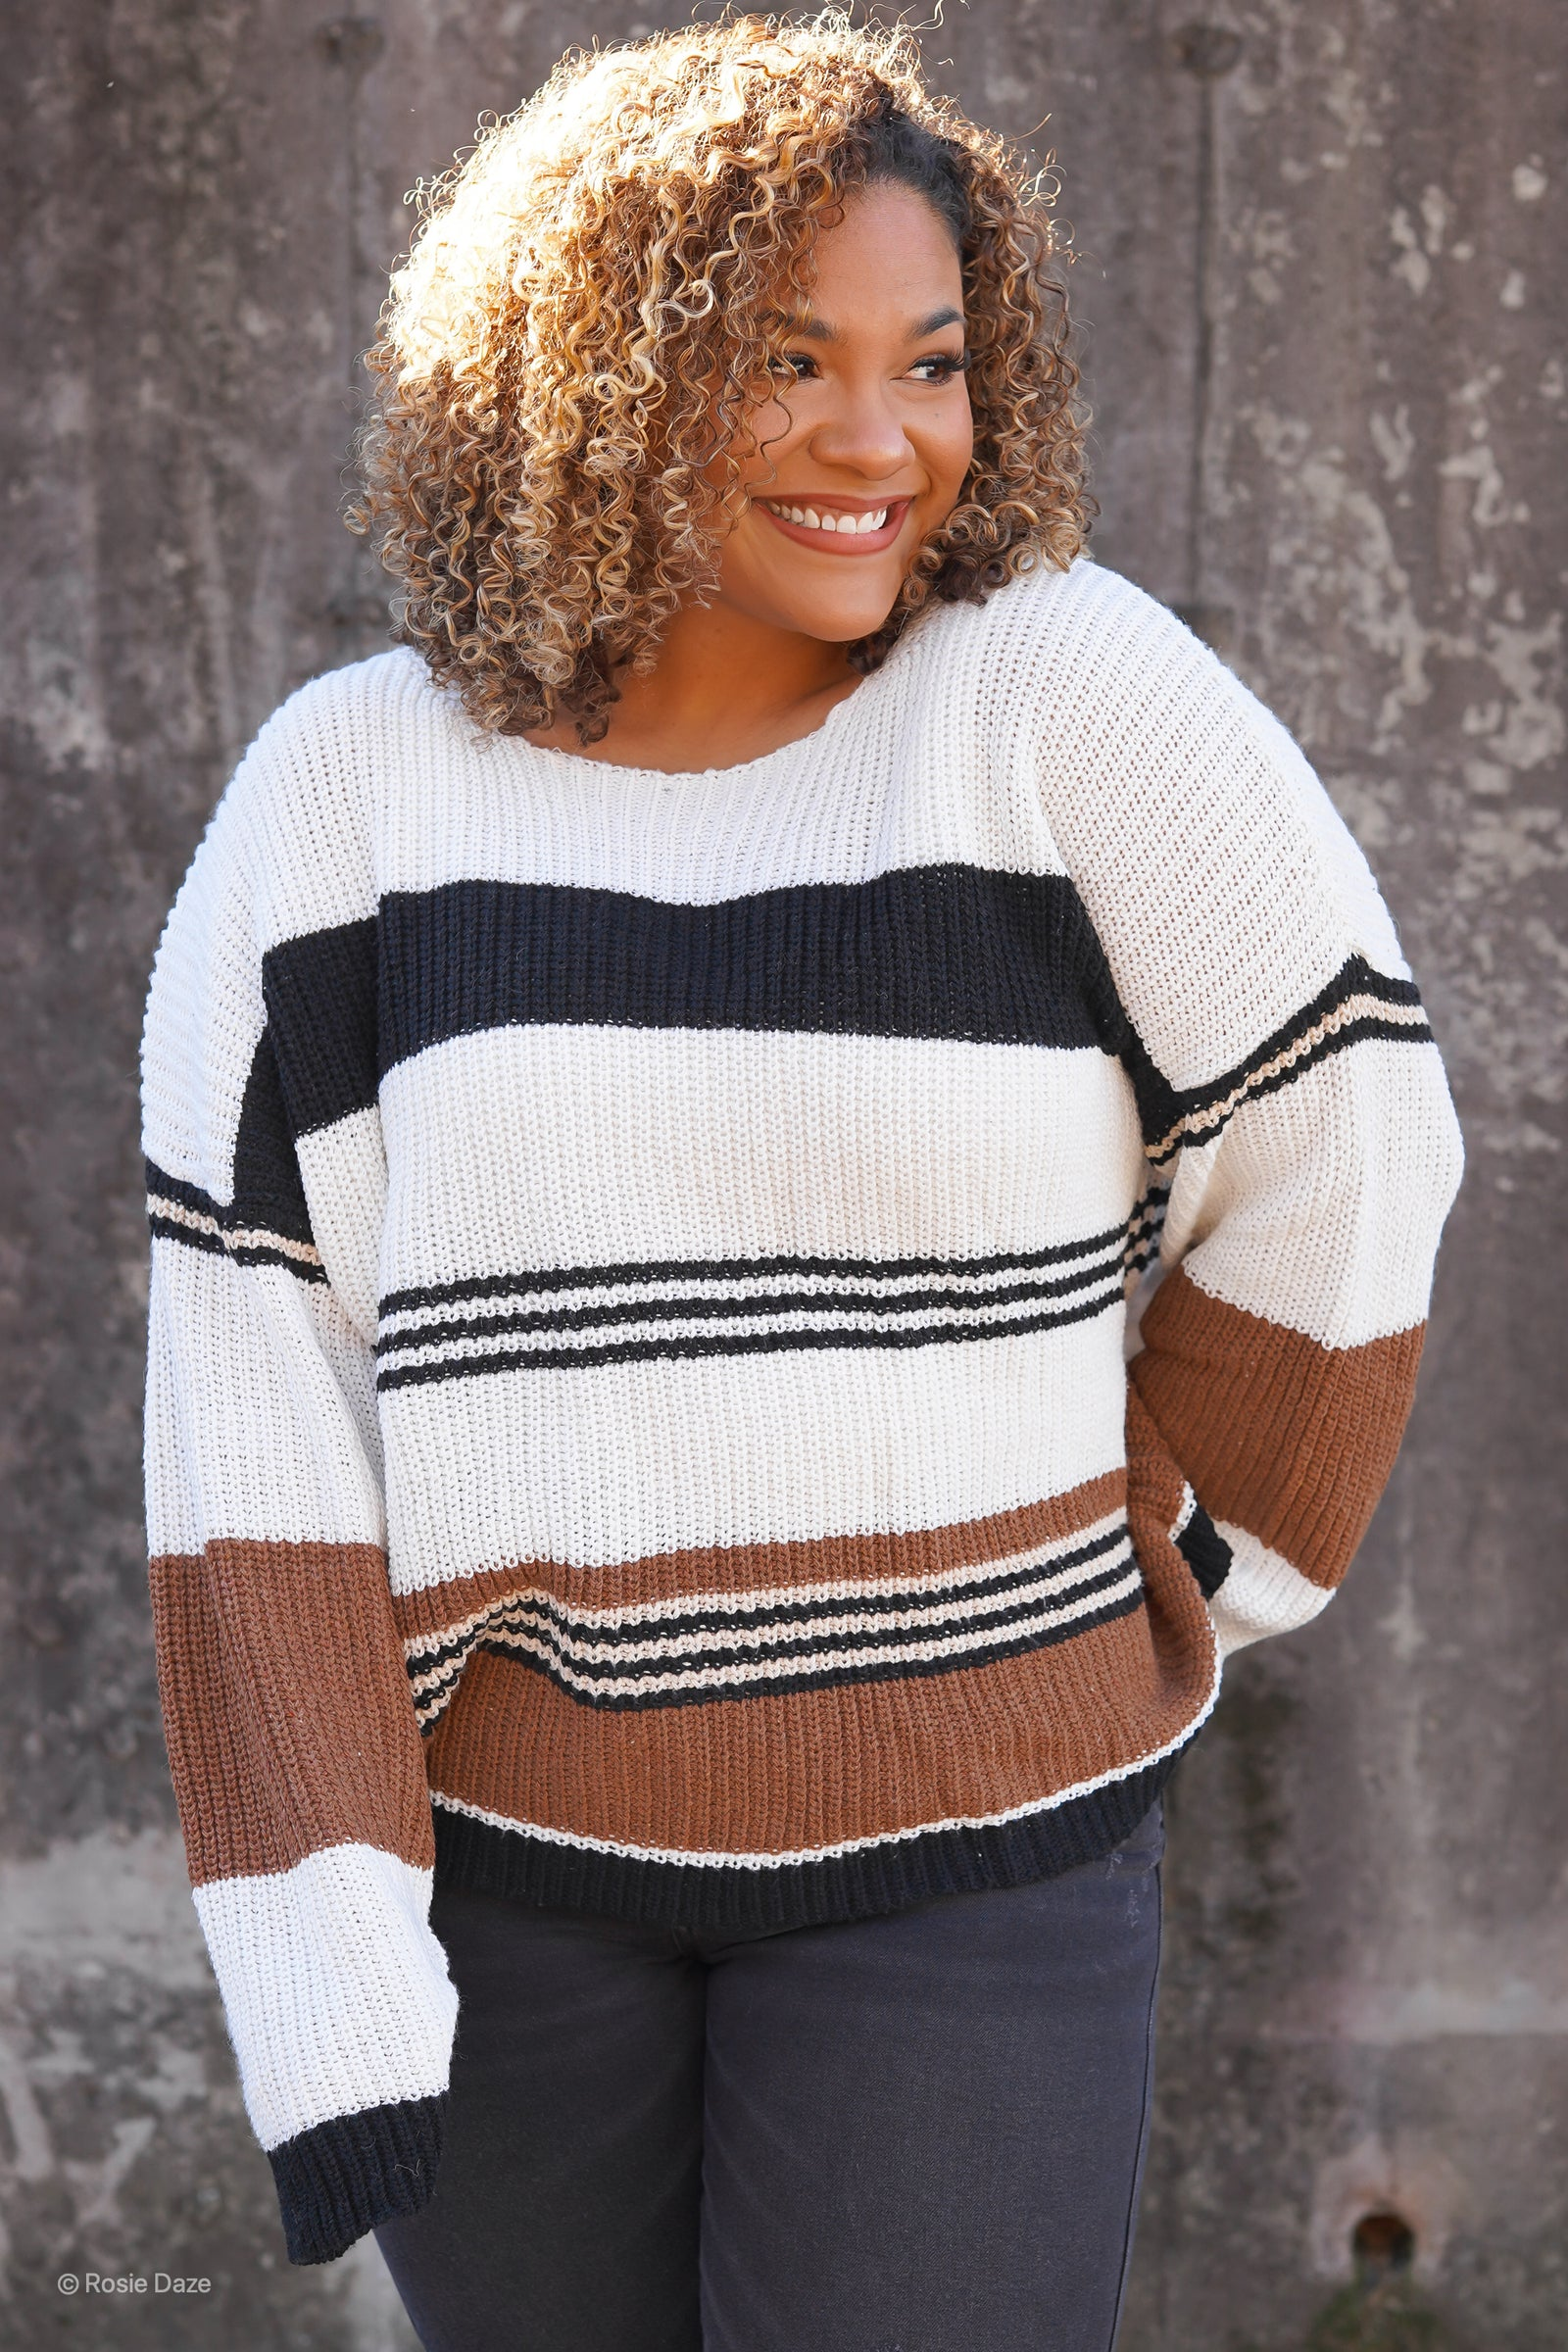 The S'mores Sweater